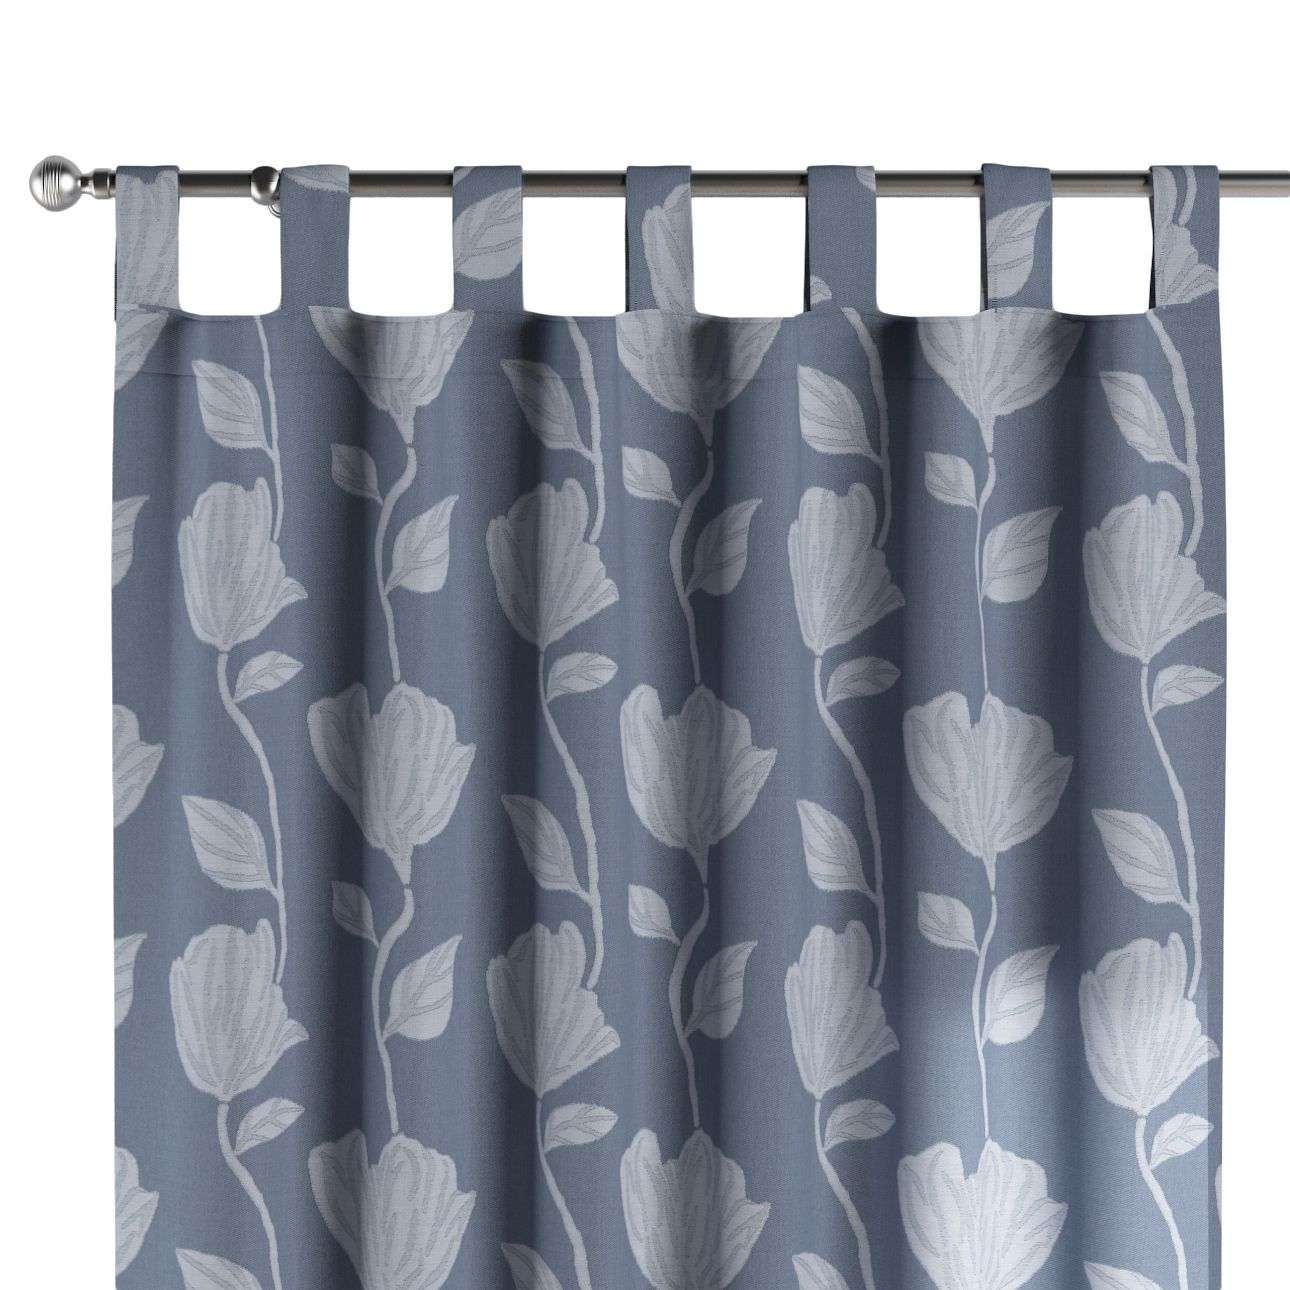 Tab top curtains in collection Venice, fabric: 140-61